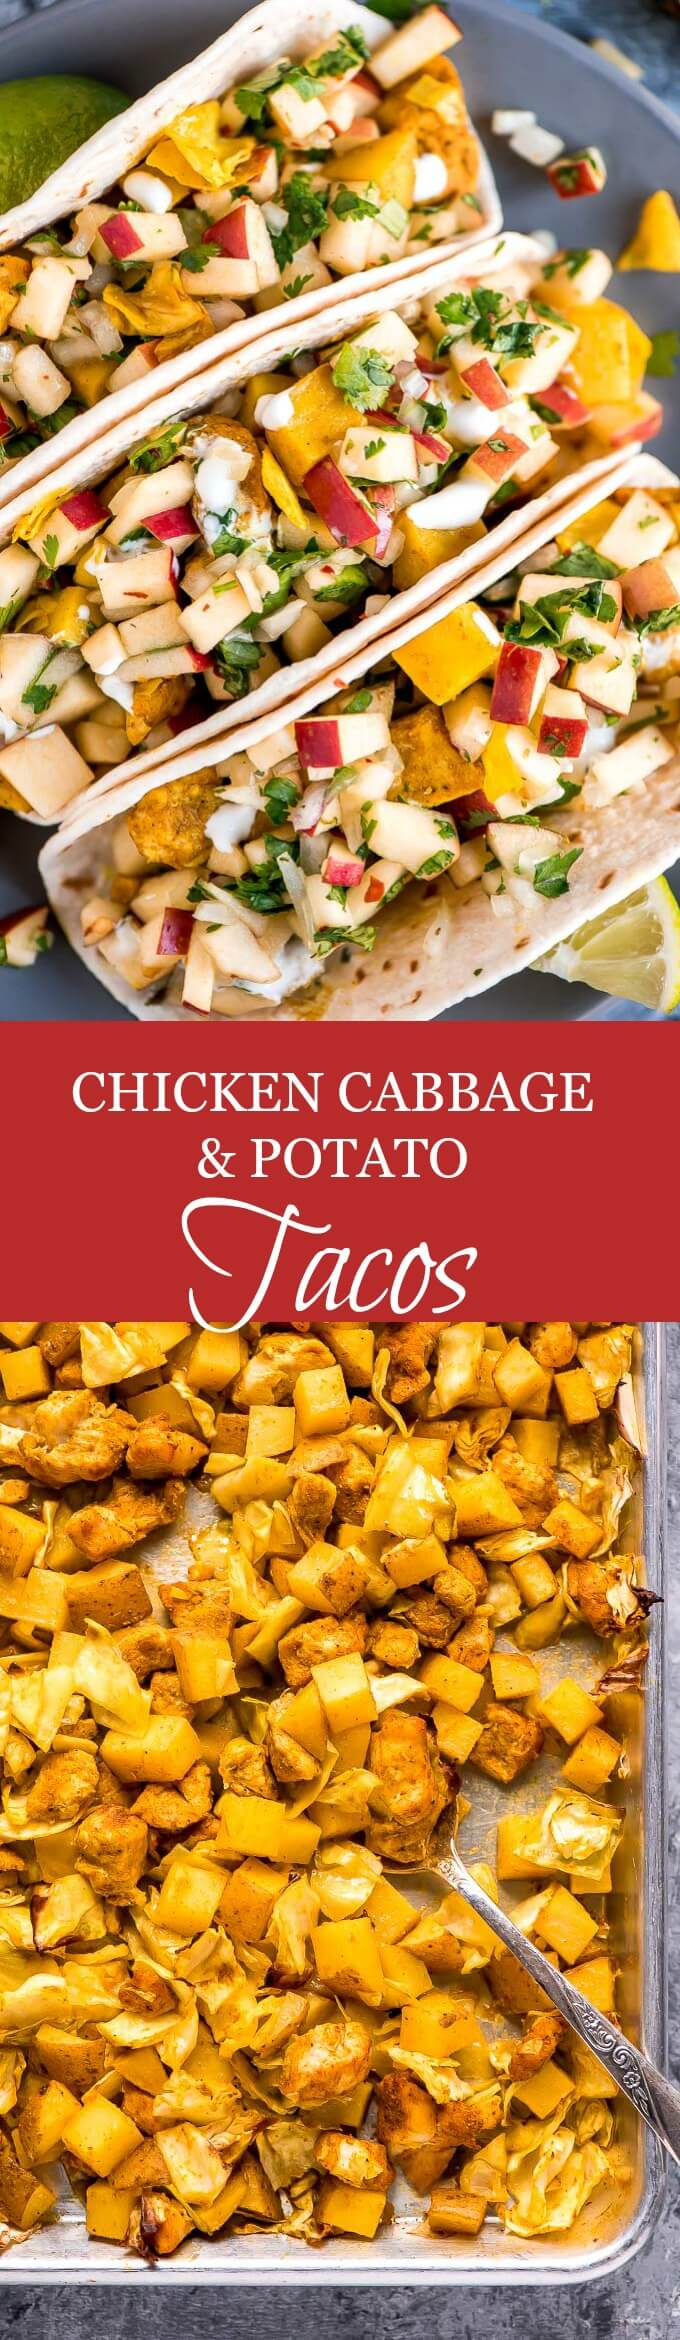 Chicken Cabbage Potato Tacos with Apple Apple Pico de Gallo is a simple and healthy dinner packed with flavor and texture that the whole family will love.